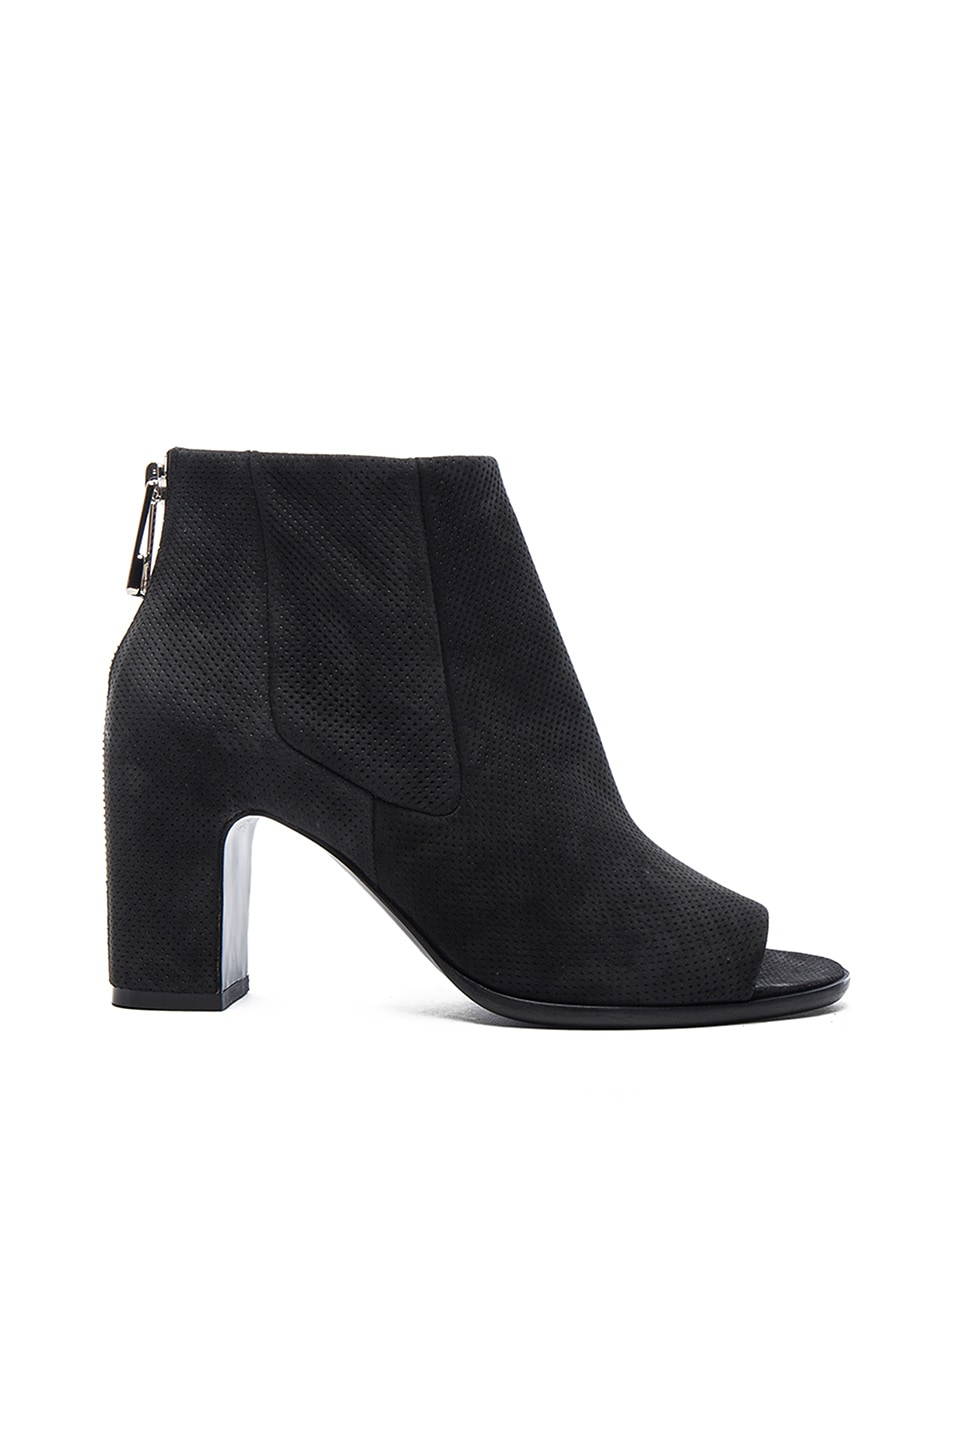 Image 1 of Balenciaga Perforated Leather Open Toe Booties in Black